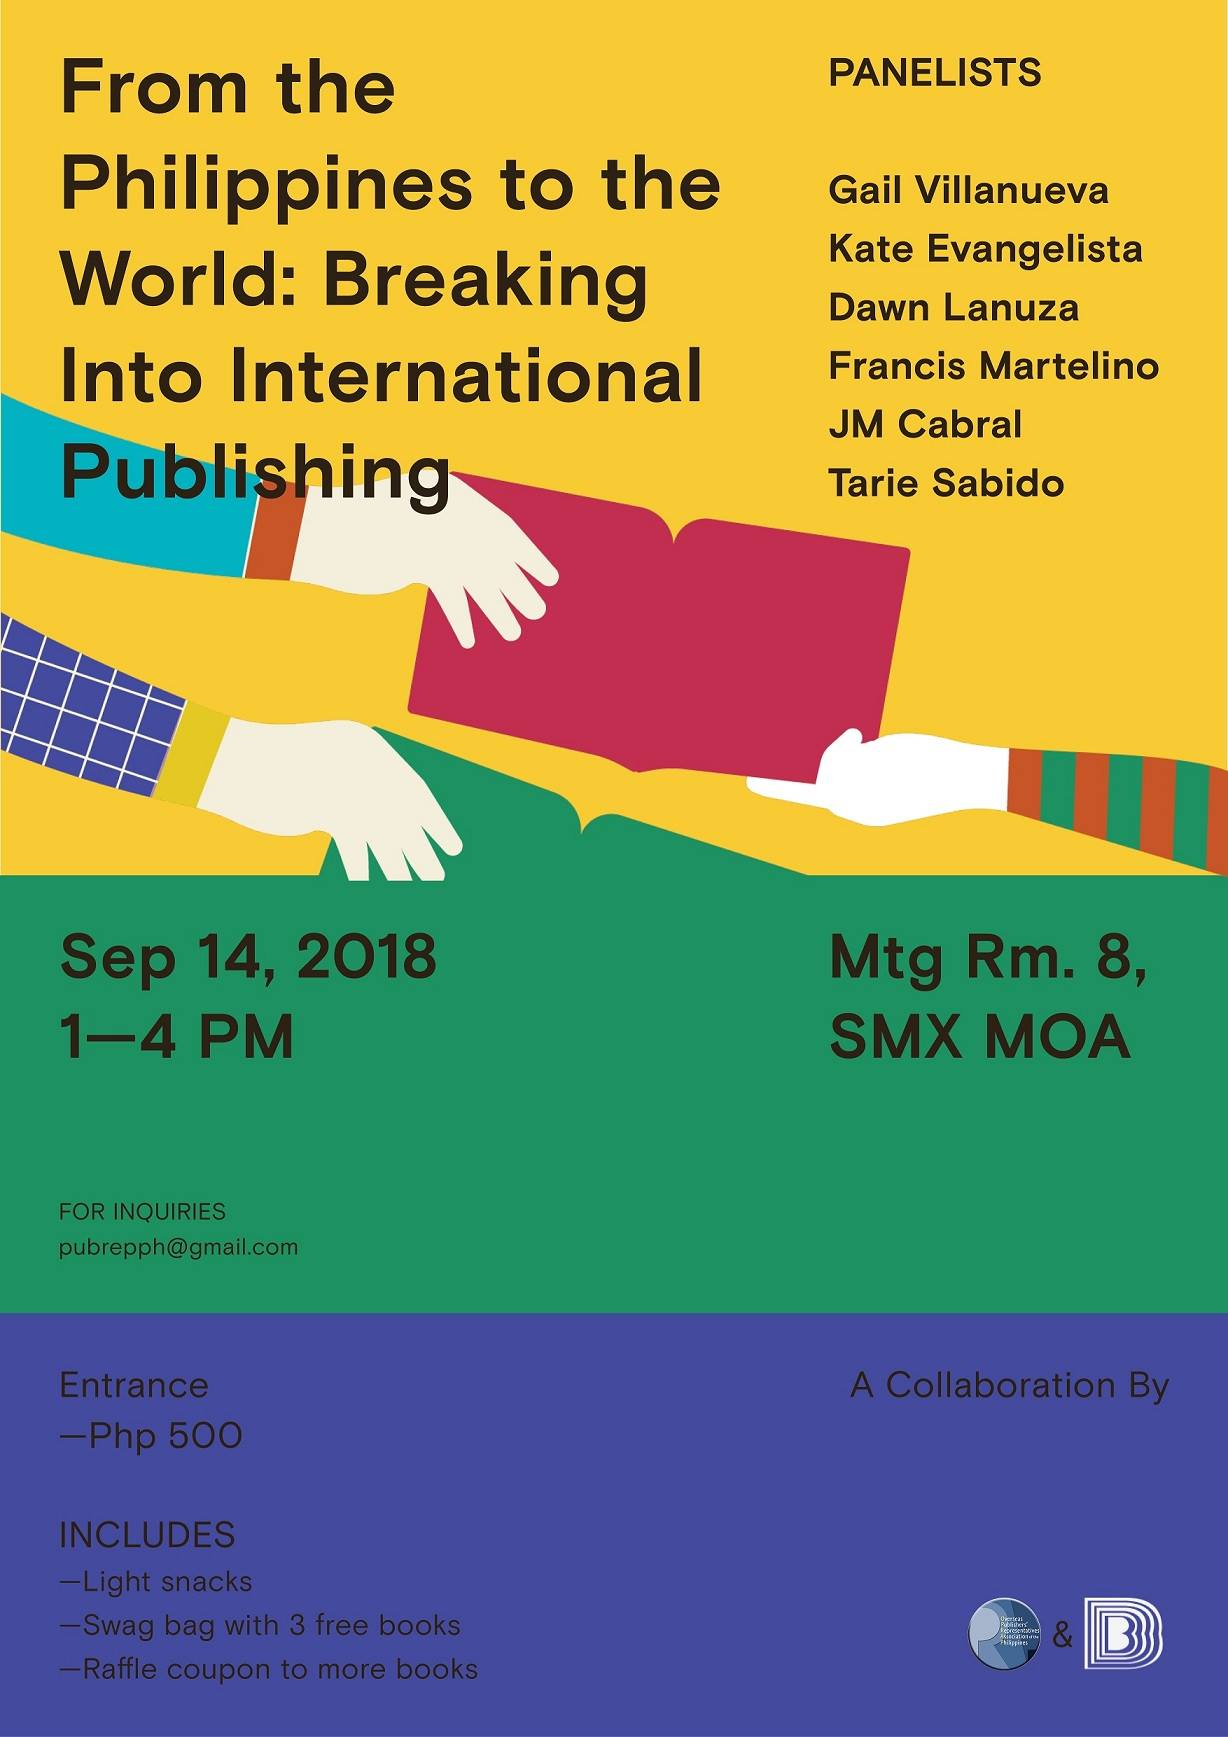 From the Philippines to the World: Breaking Into International Publishing